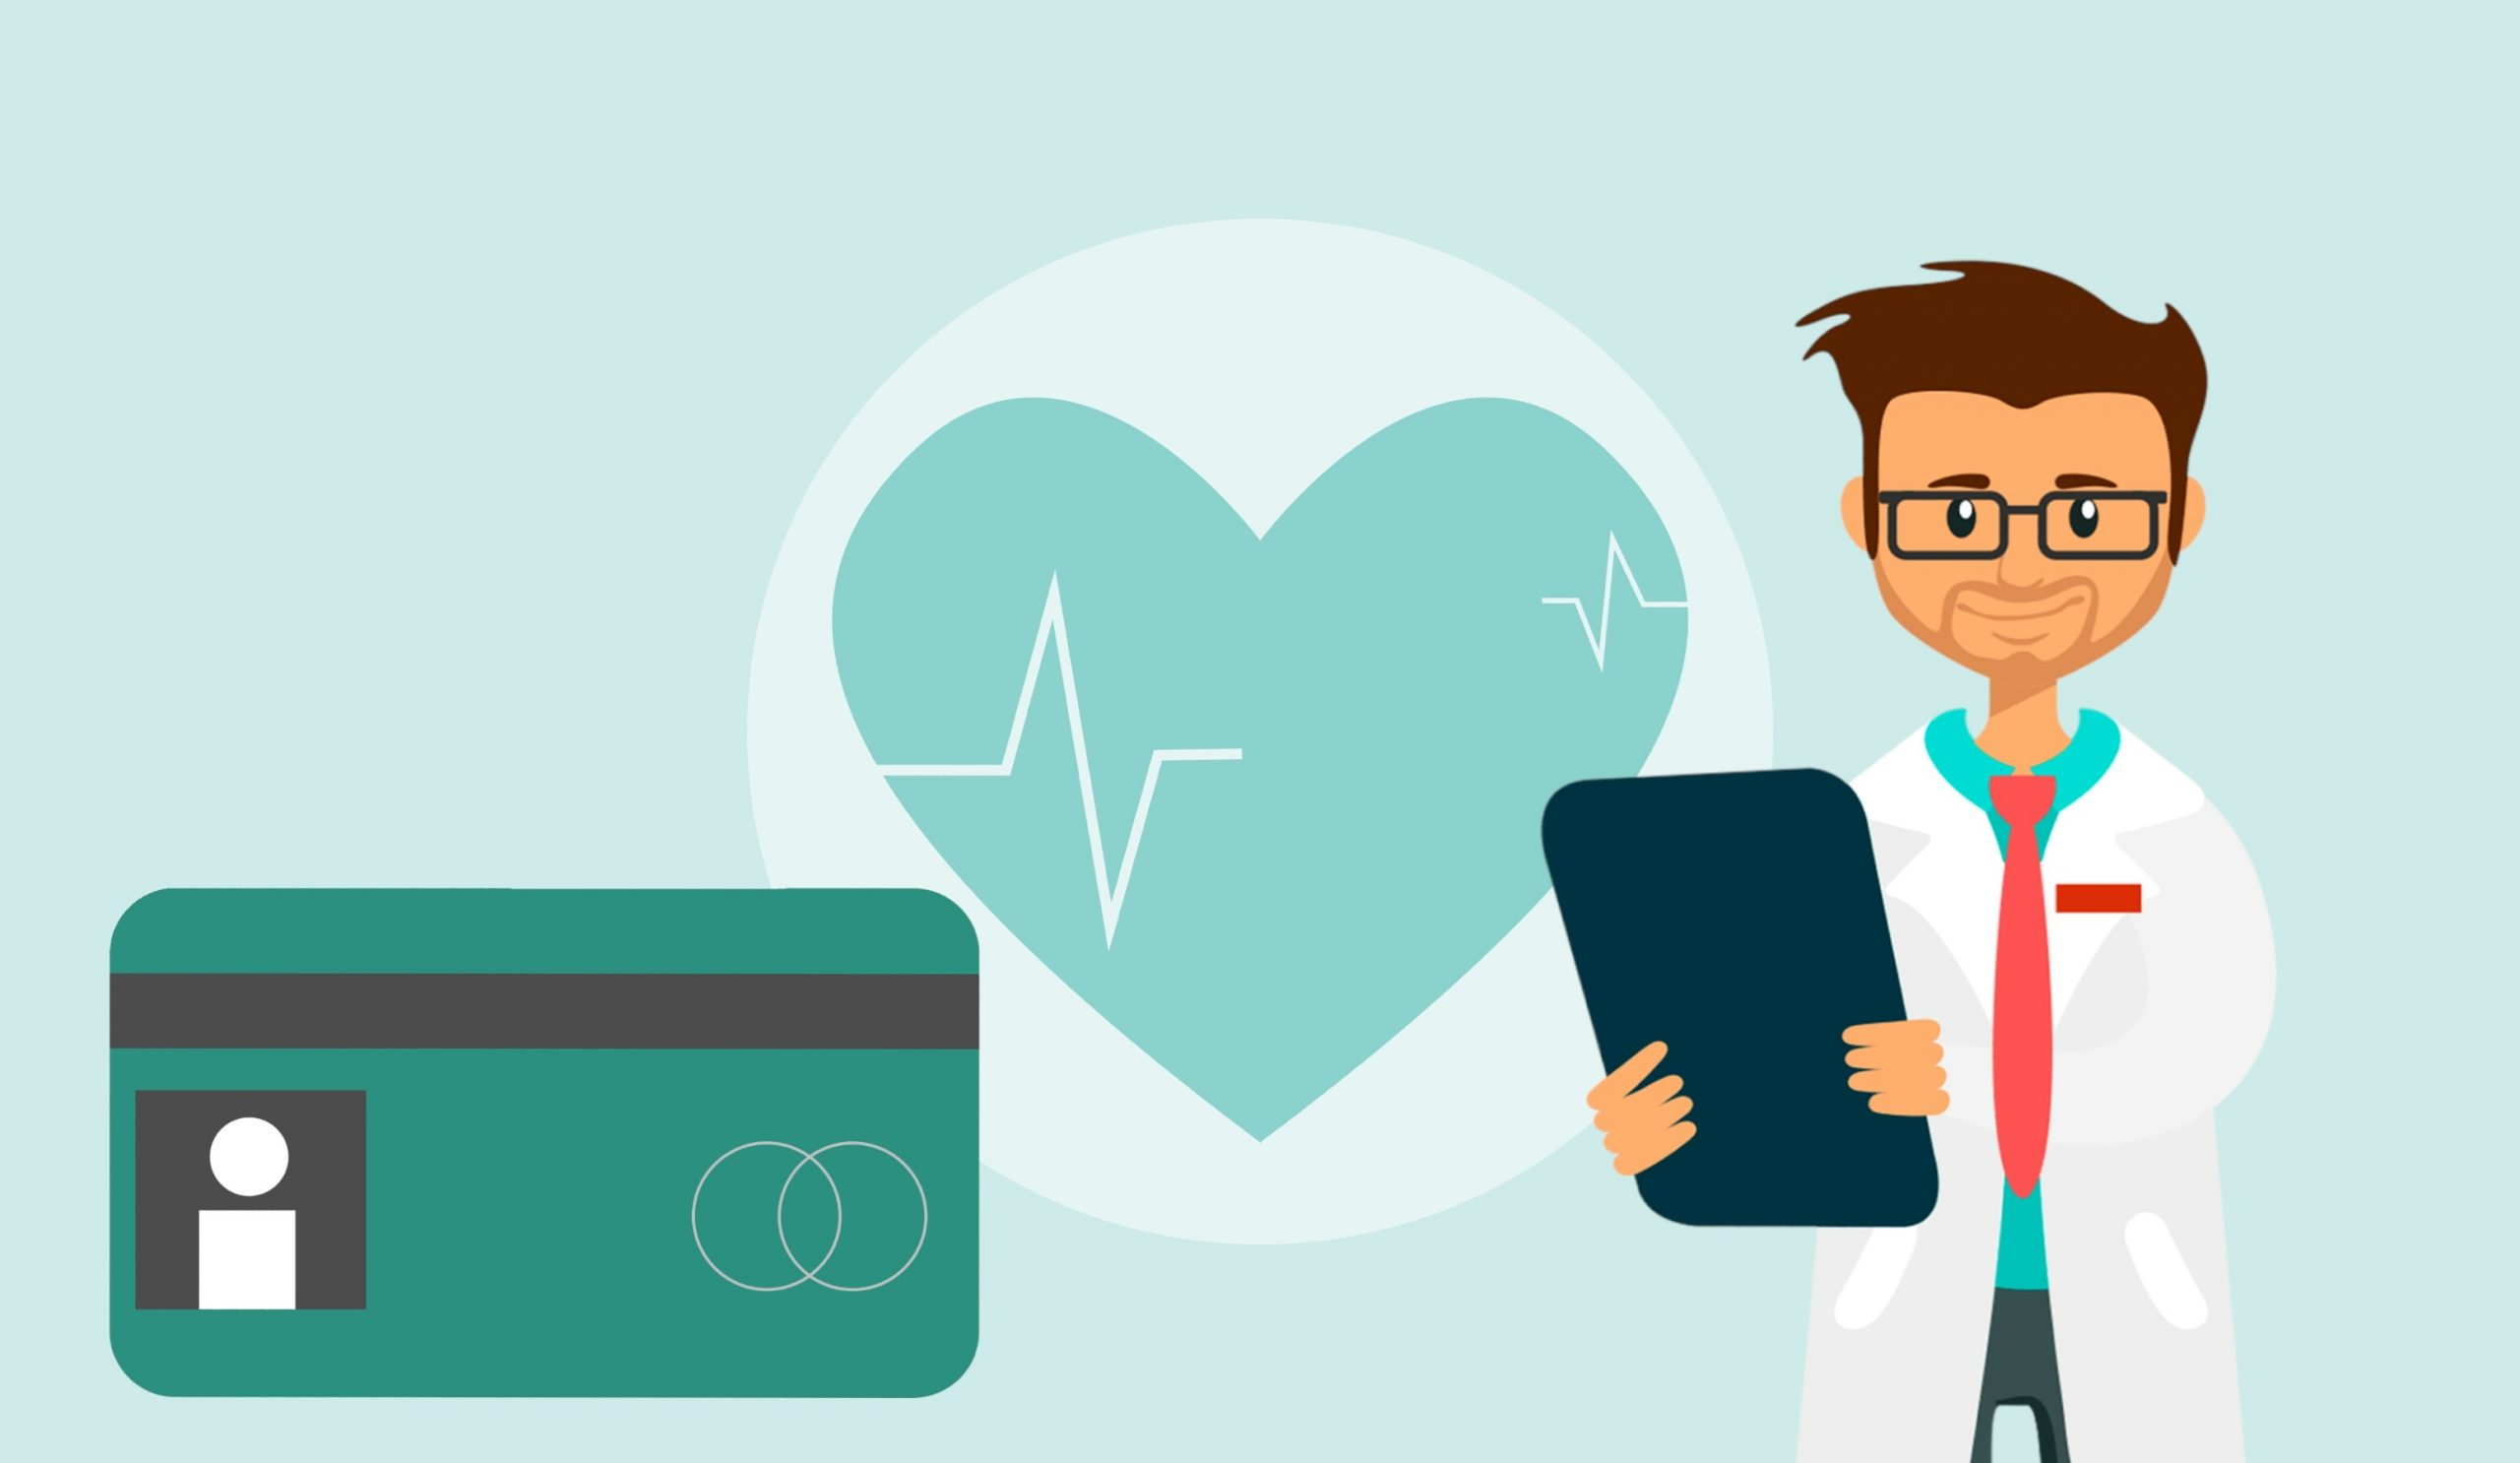 The role of Artificial Intelligence in healthcare